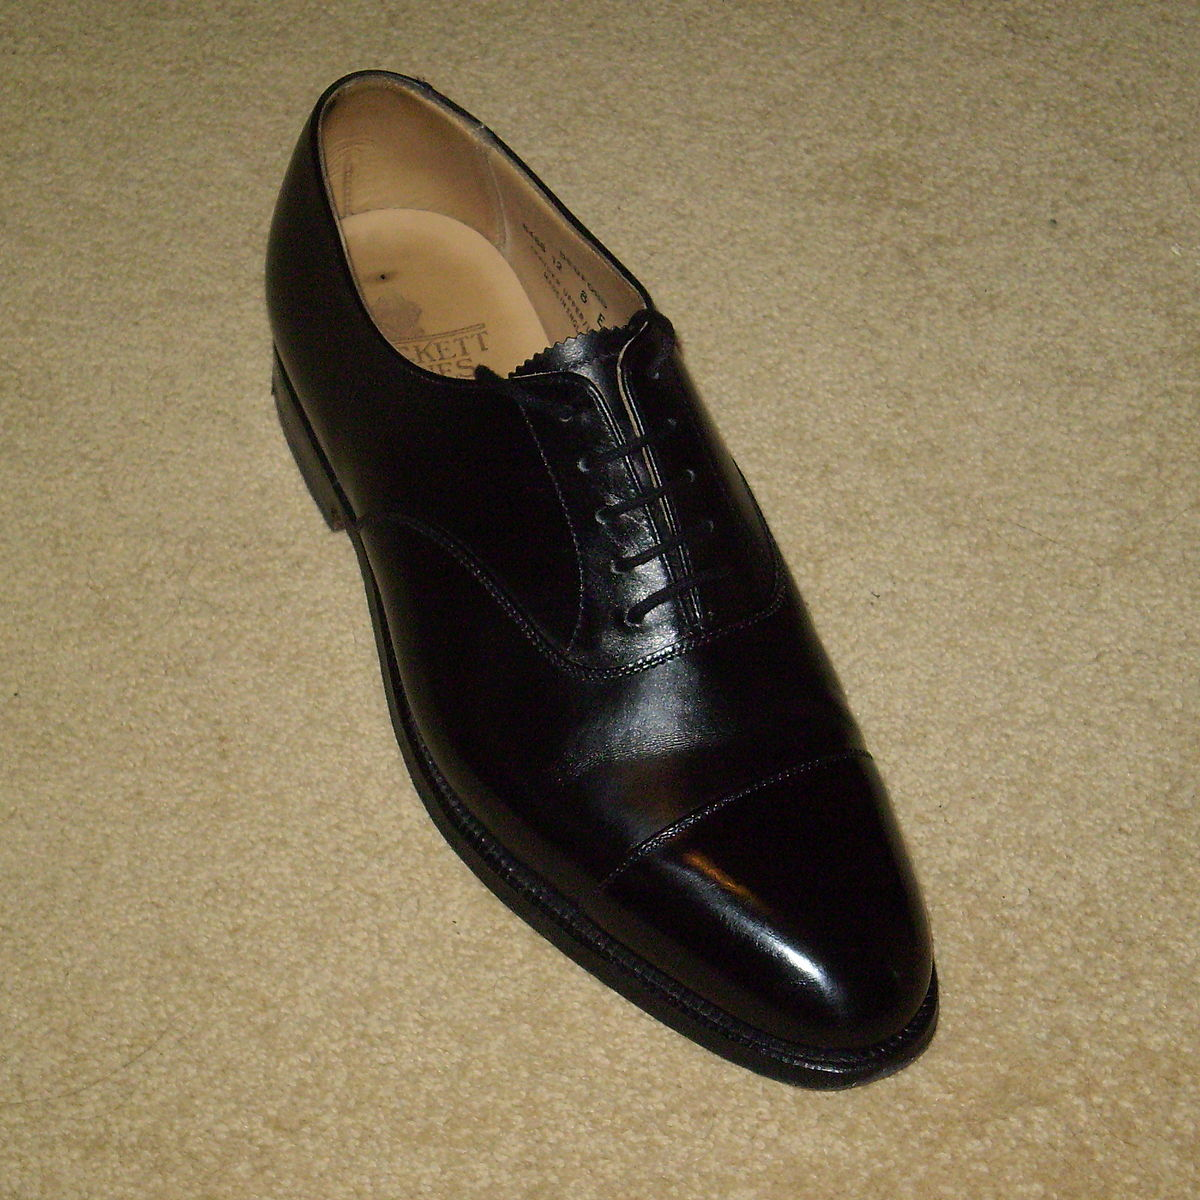 Oxford Shoe Wikipedia